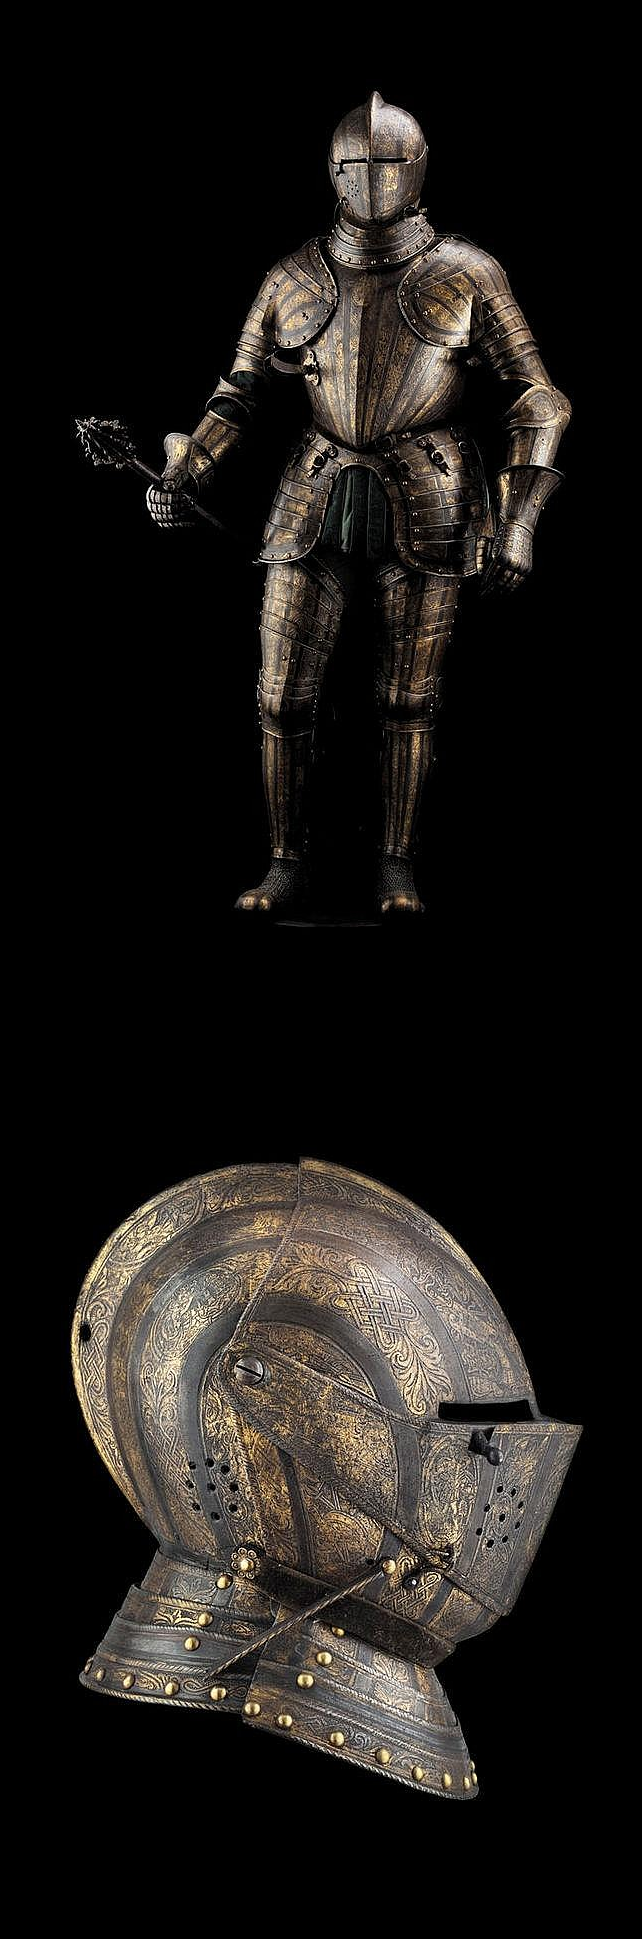 An exceptional North Italian etched blued and gilt full armour for the field, signed POMPE and attributed to the workshop of Pompeo della Cesa, circa 1585-1595.